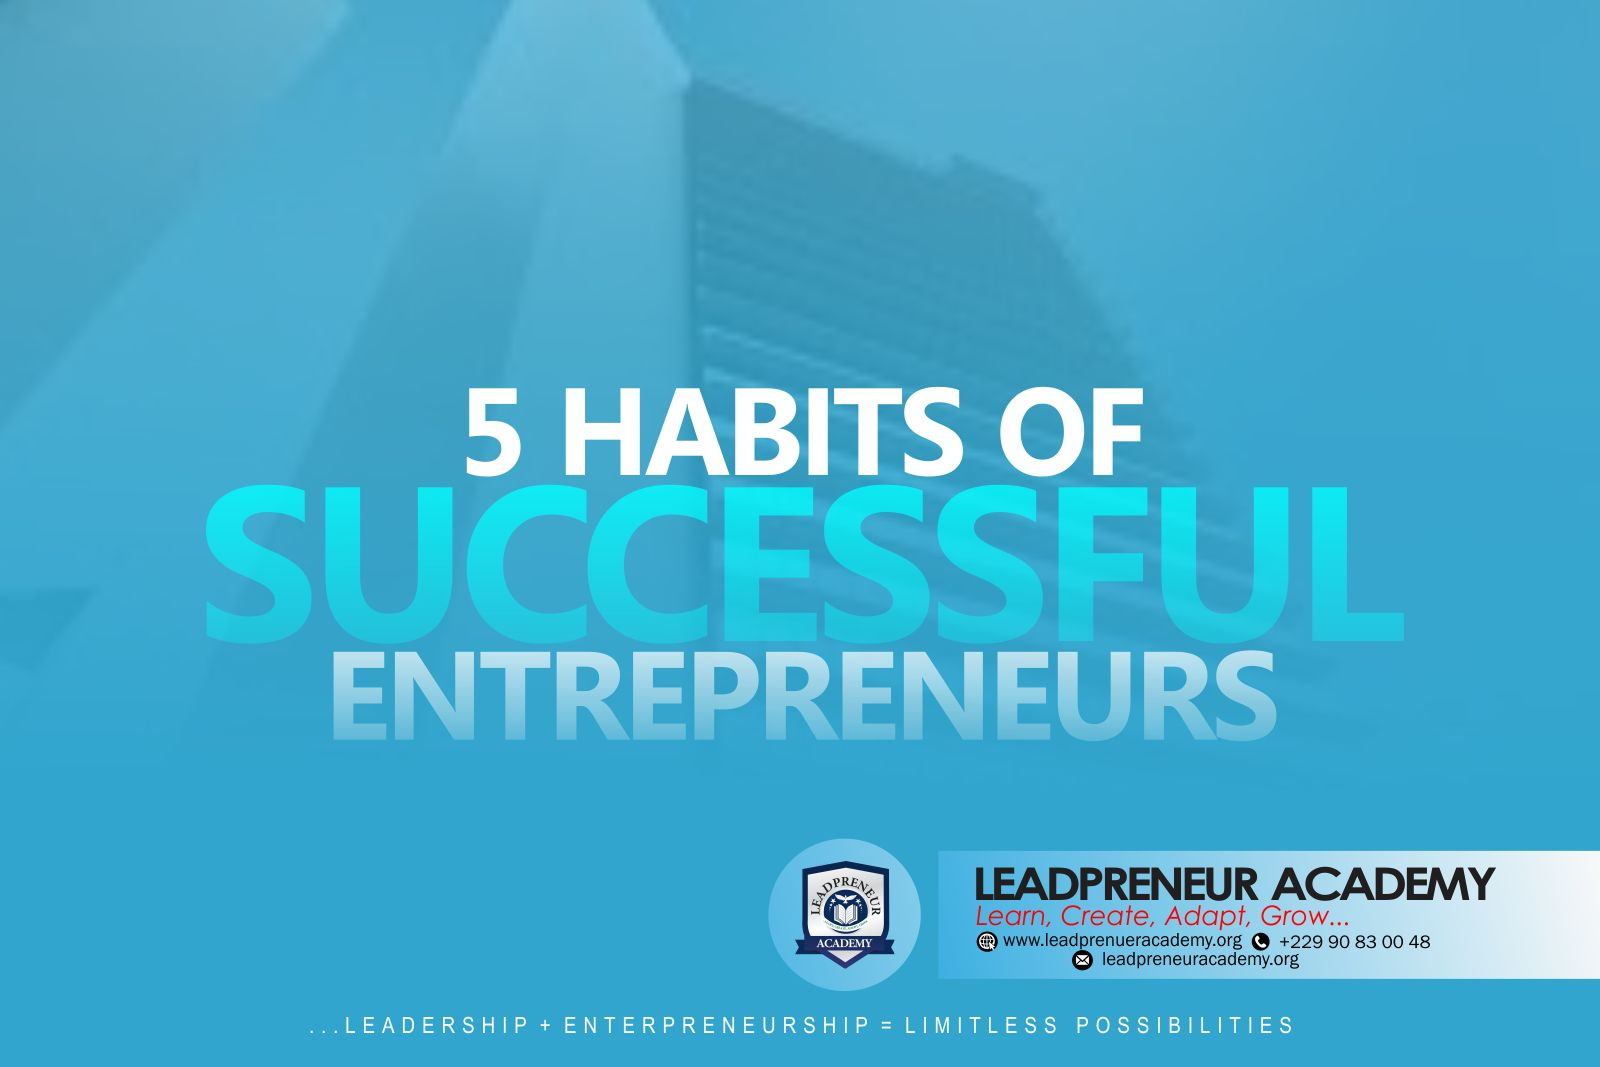 5 HABITS OF SUCCESSFUL PEOPLE